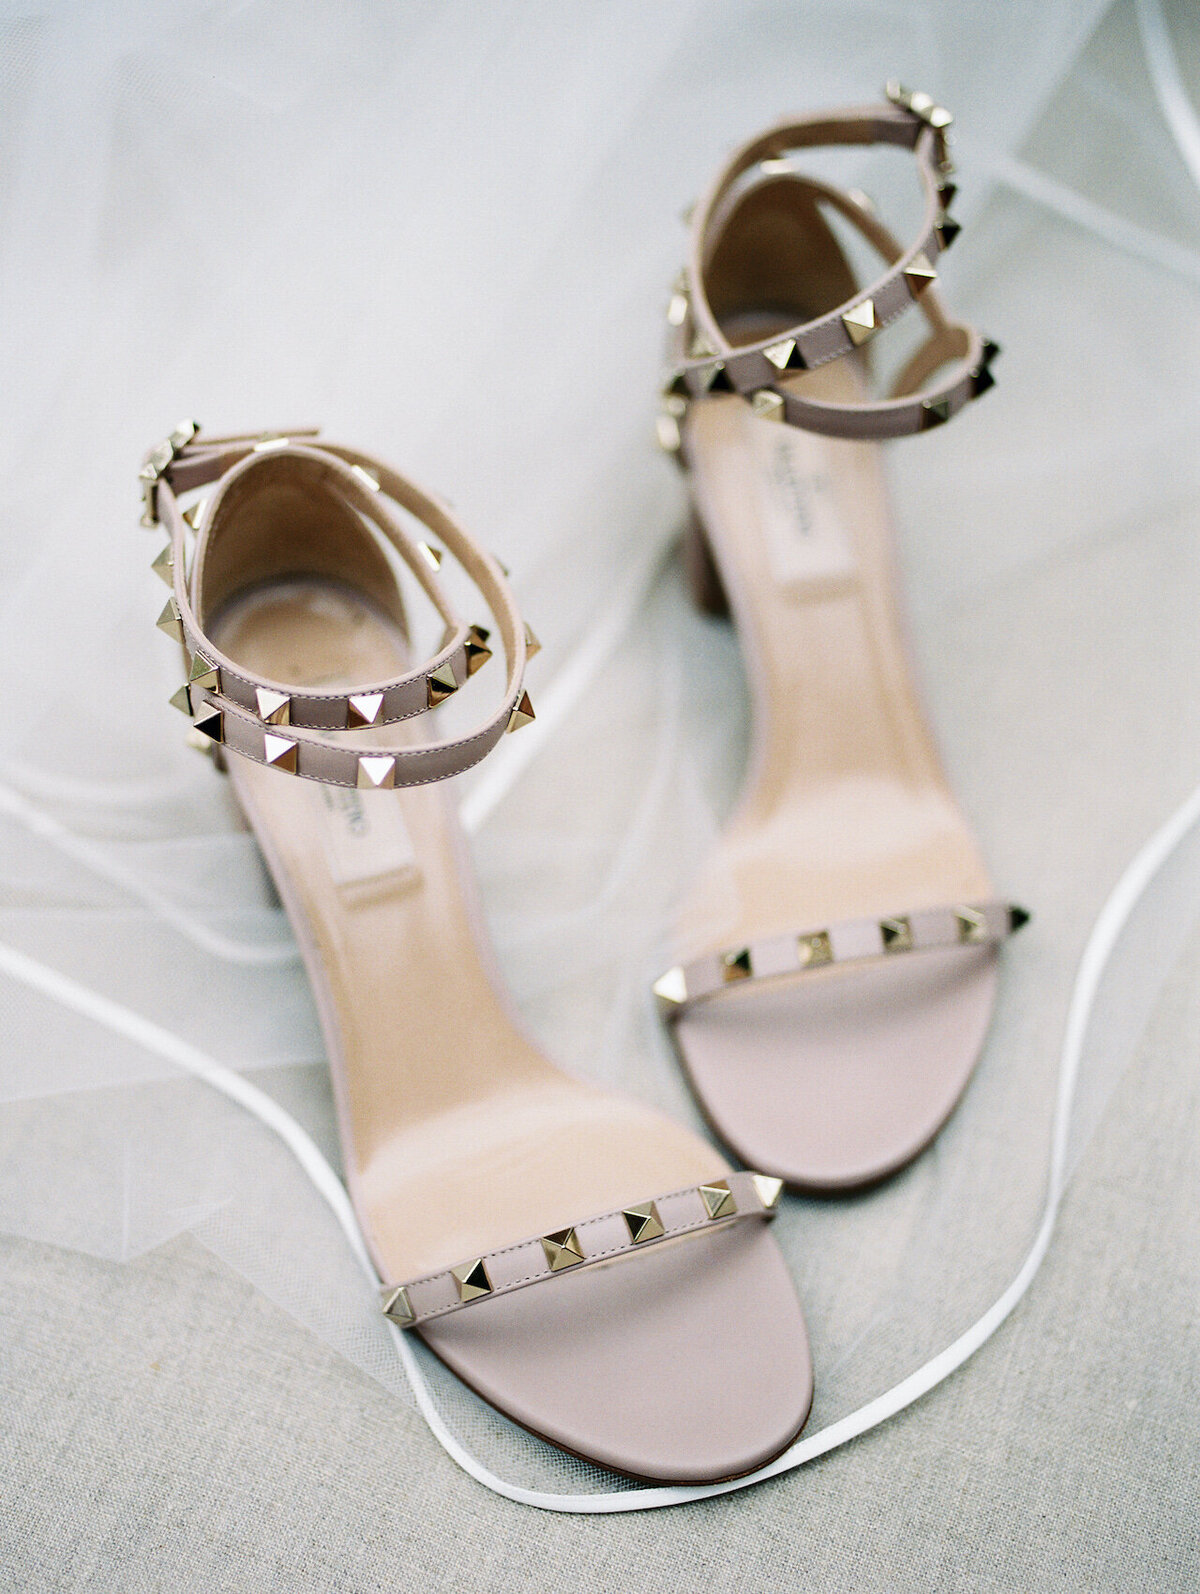 Valentino Wedding Shoes Washington DC Wedding Photographer Robert Aveau for © Bonnie Sen Photography